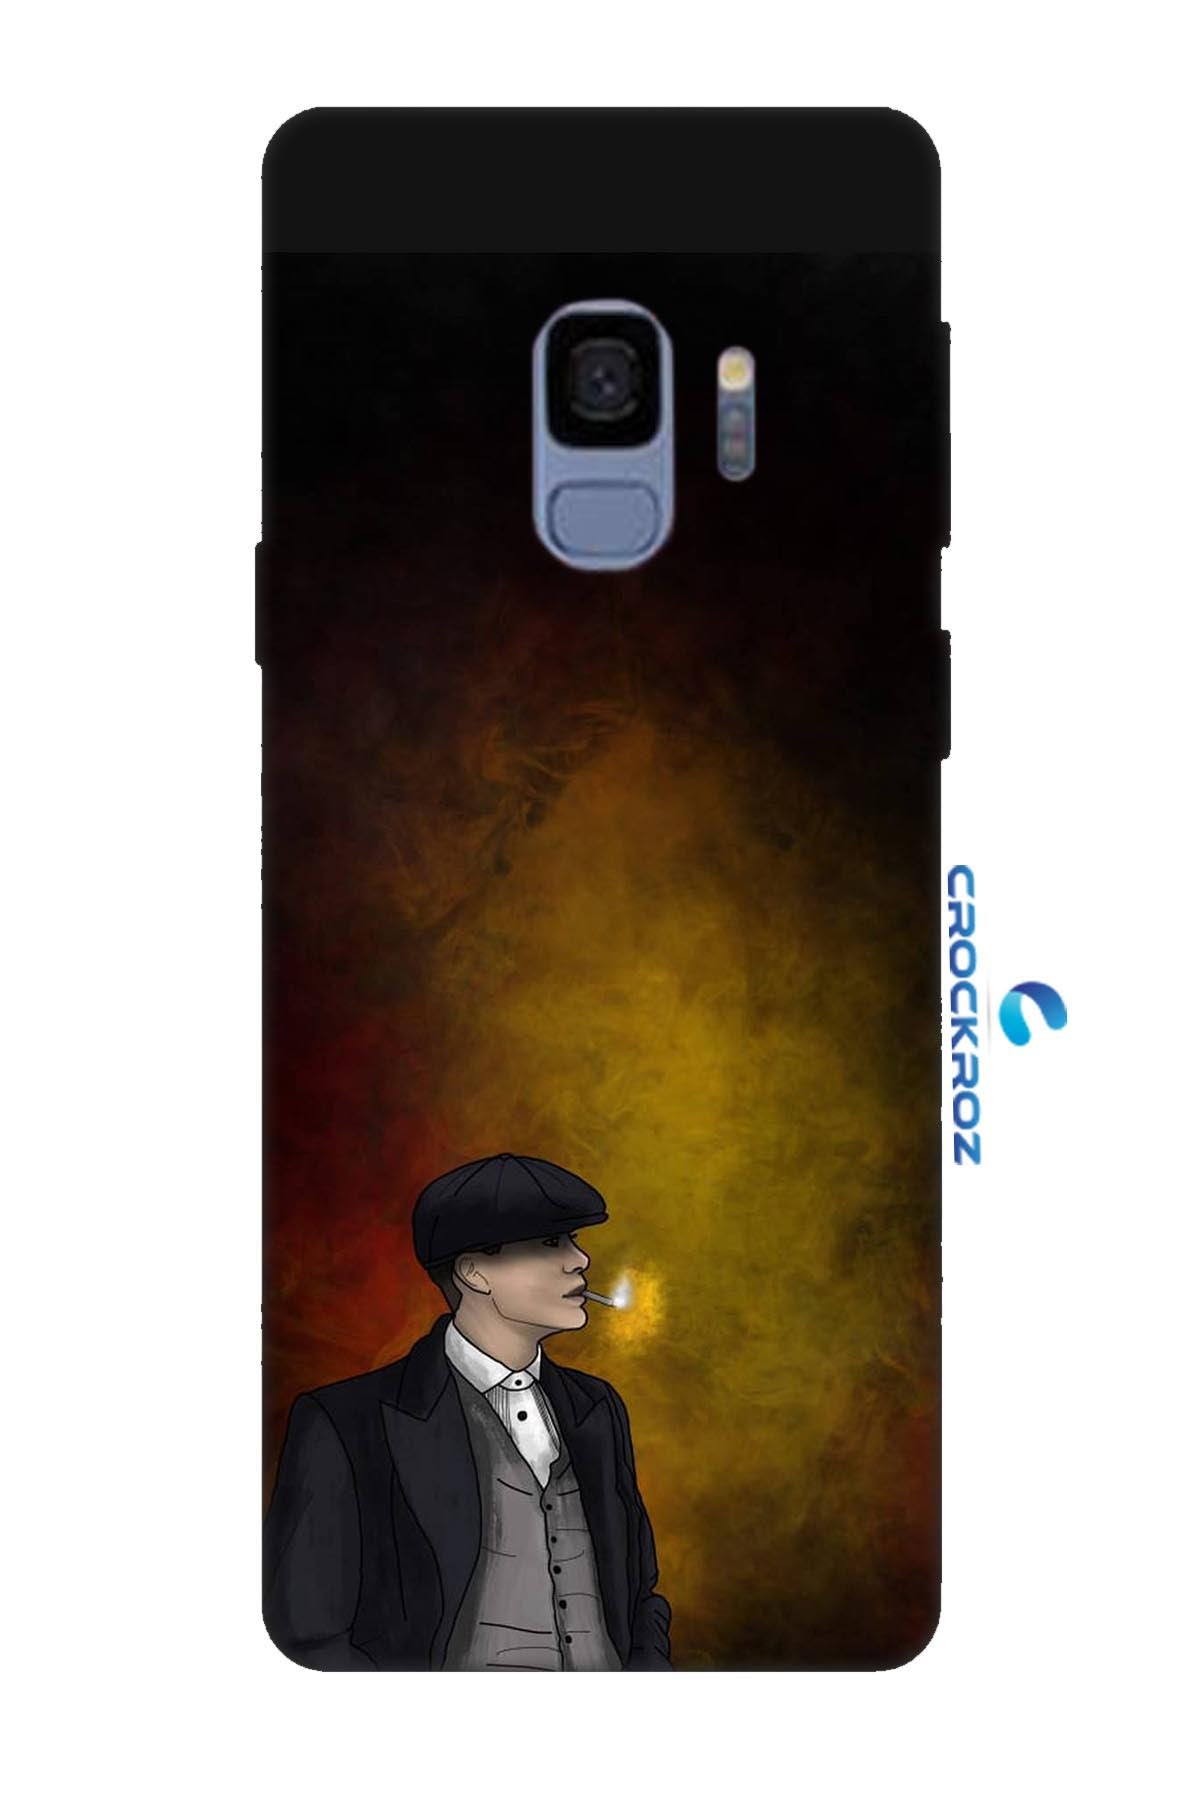 Samsung Galaxy S9 Detective Designed Back Cover